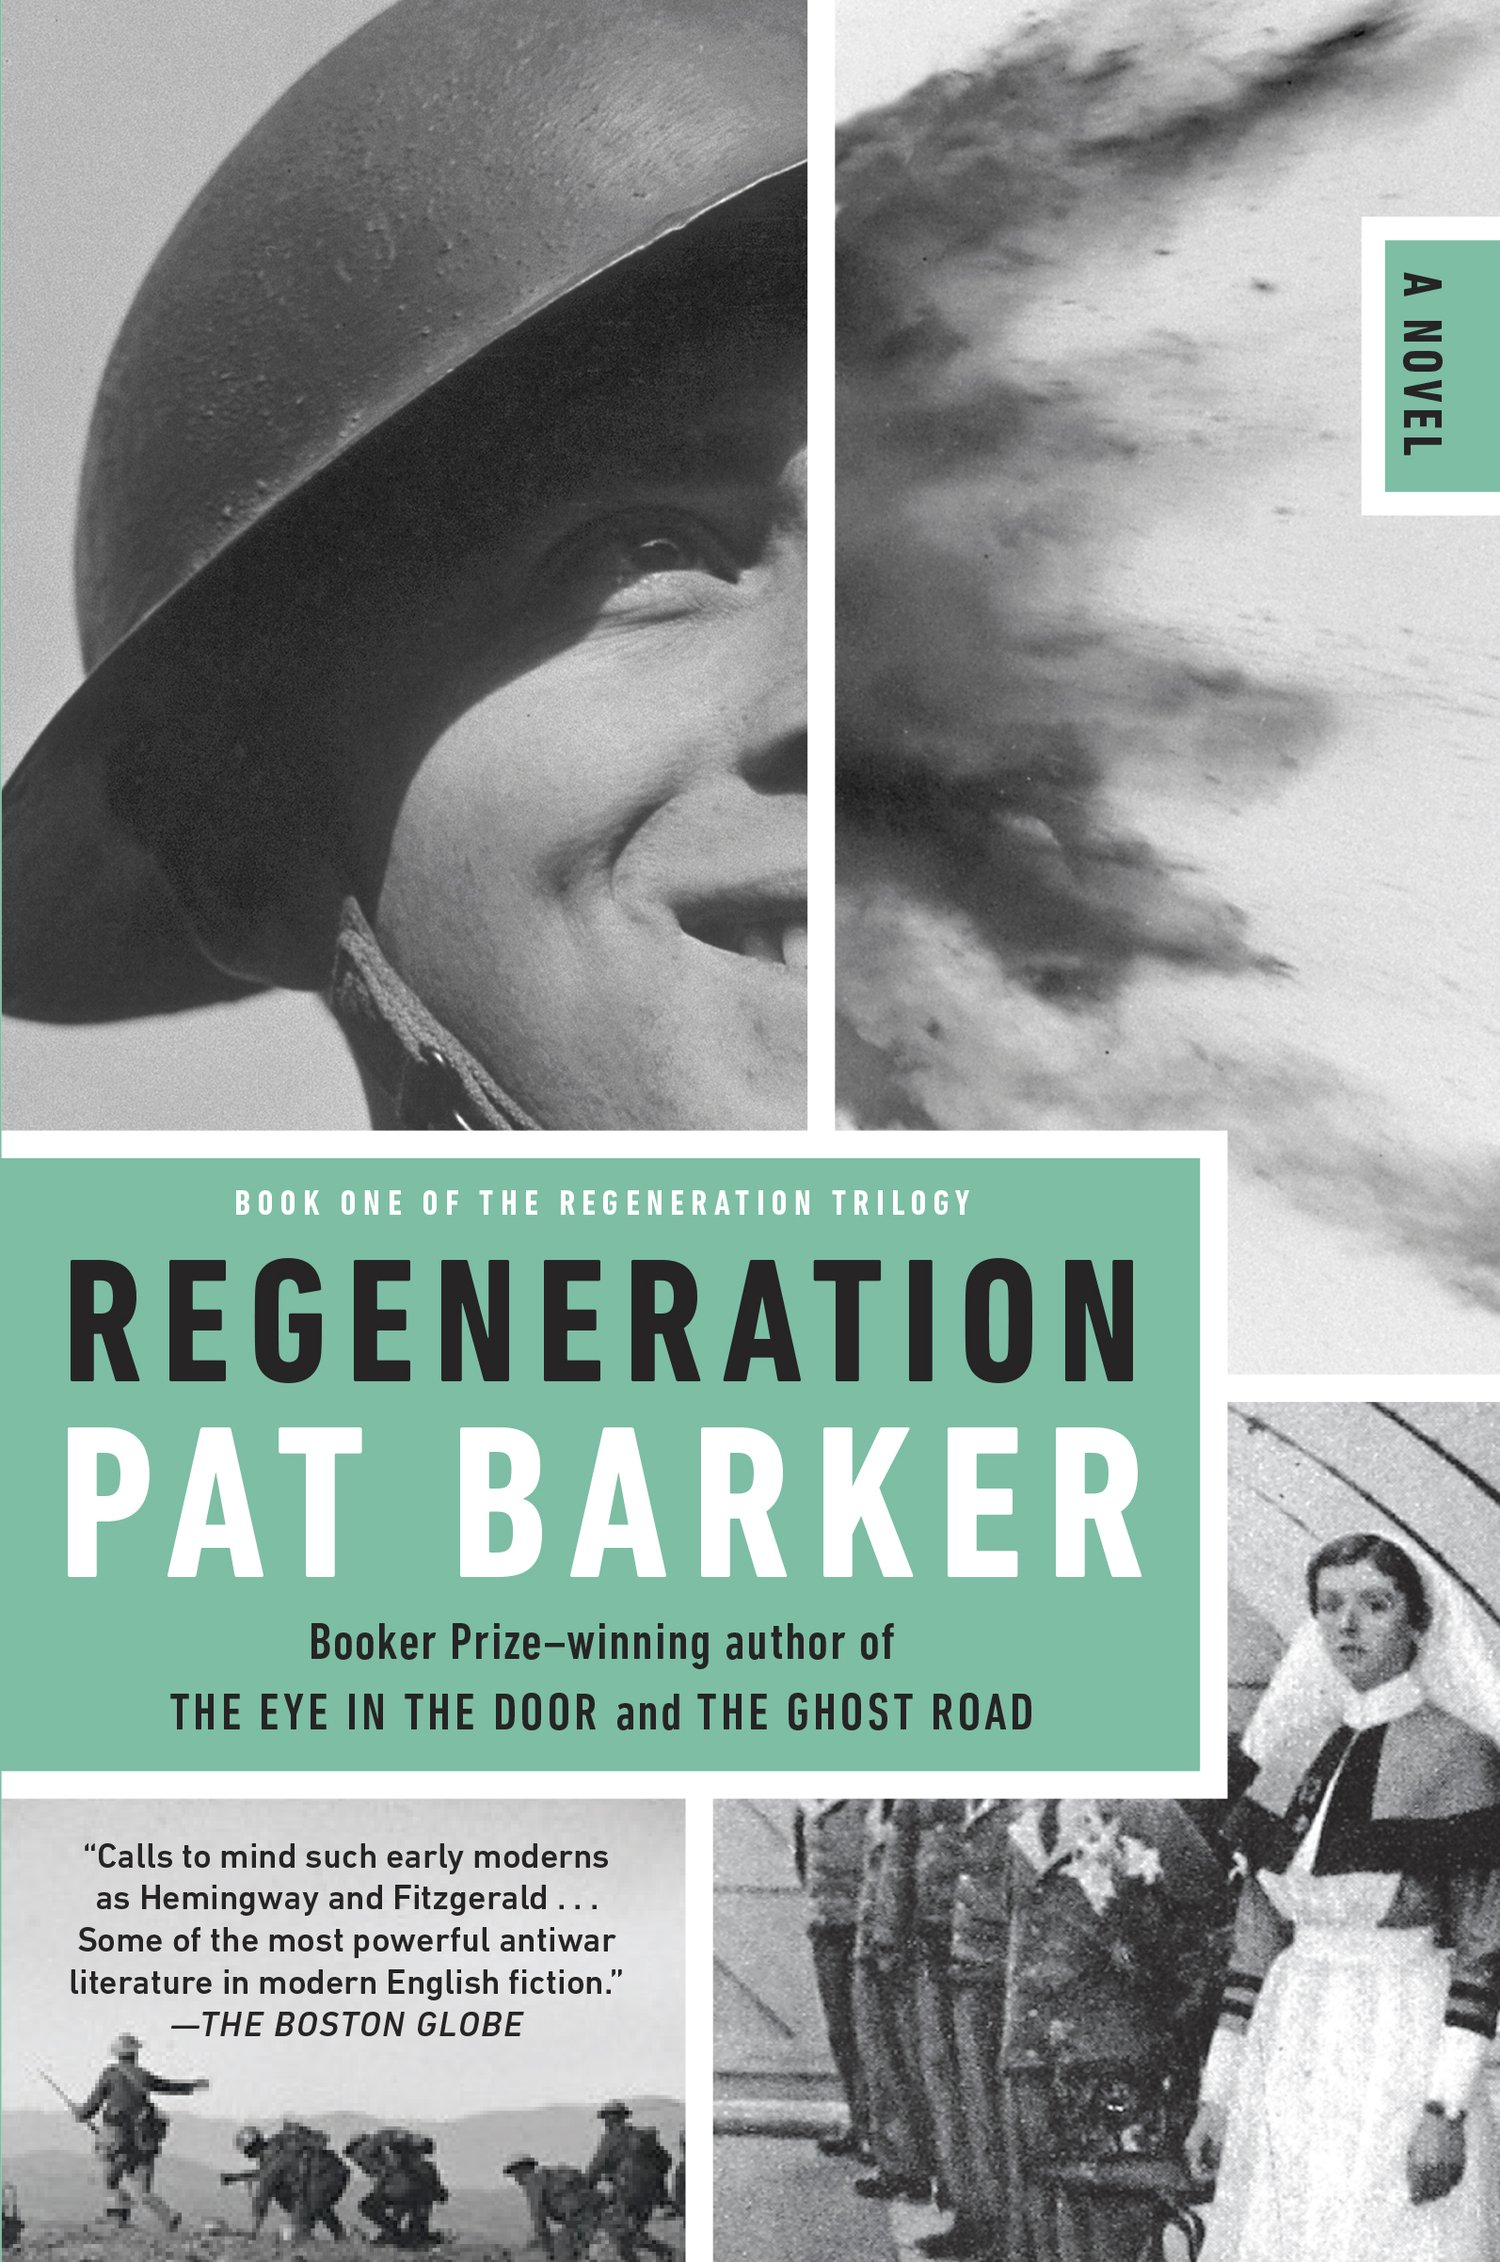 is regeneration an anti war novel essay One way is to argue that regeneration is not an anti-war novel first, because the work is historical fiction, we might assert that it was necessary for barker to include sassoon's protest against the war as an important facet of his character, but that his protest is not central to the novel.